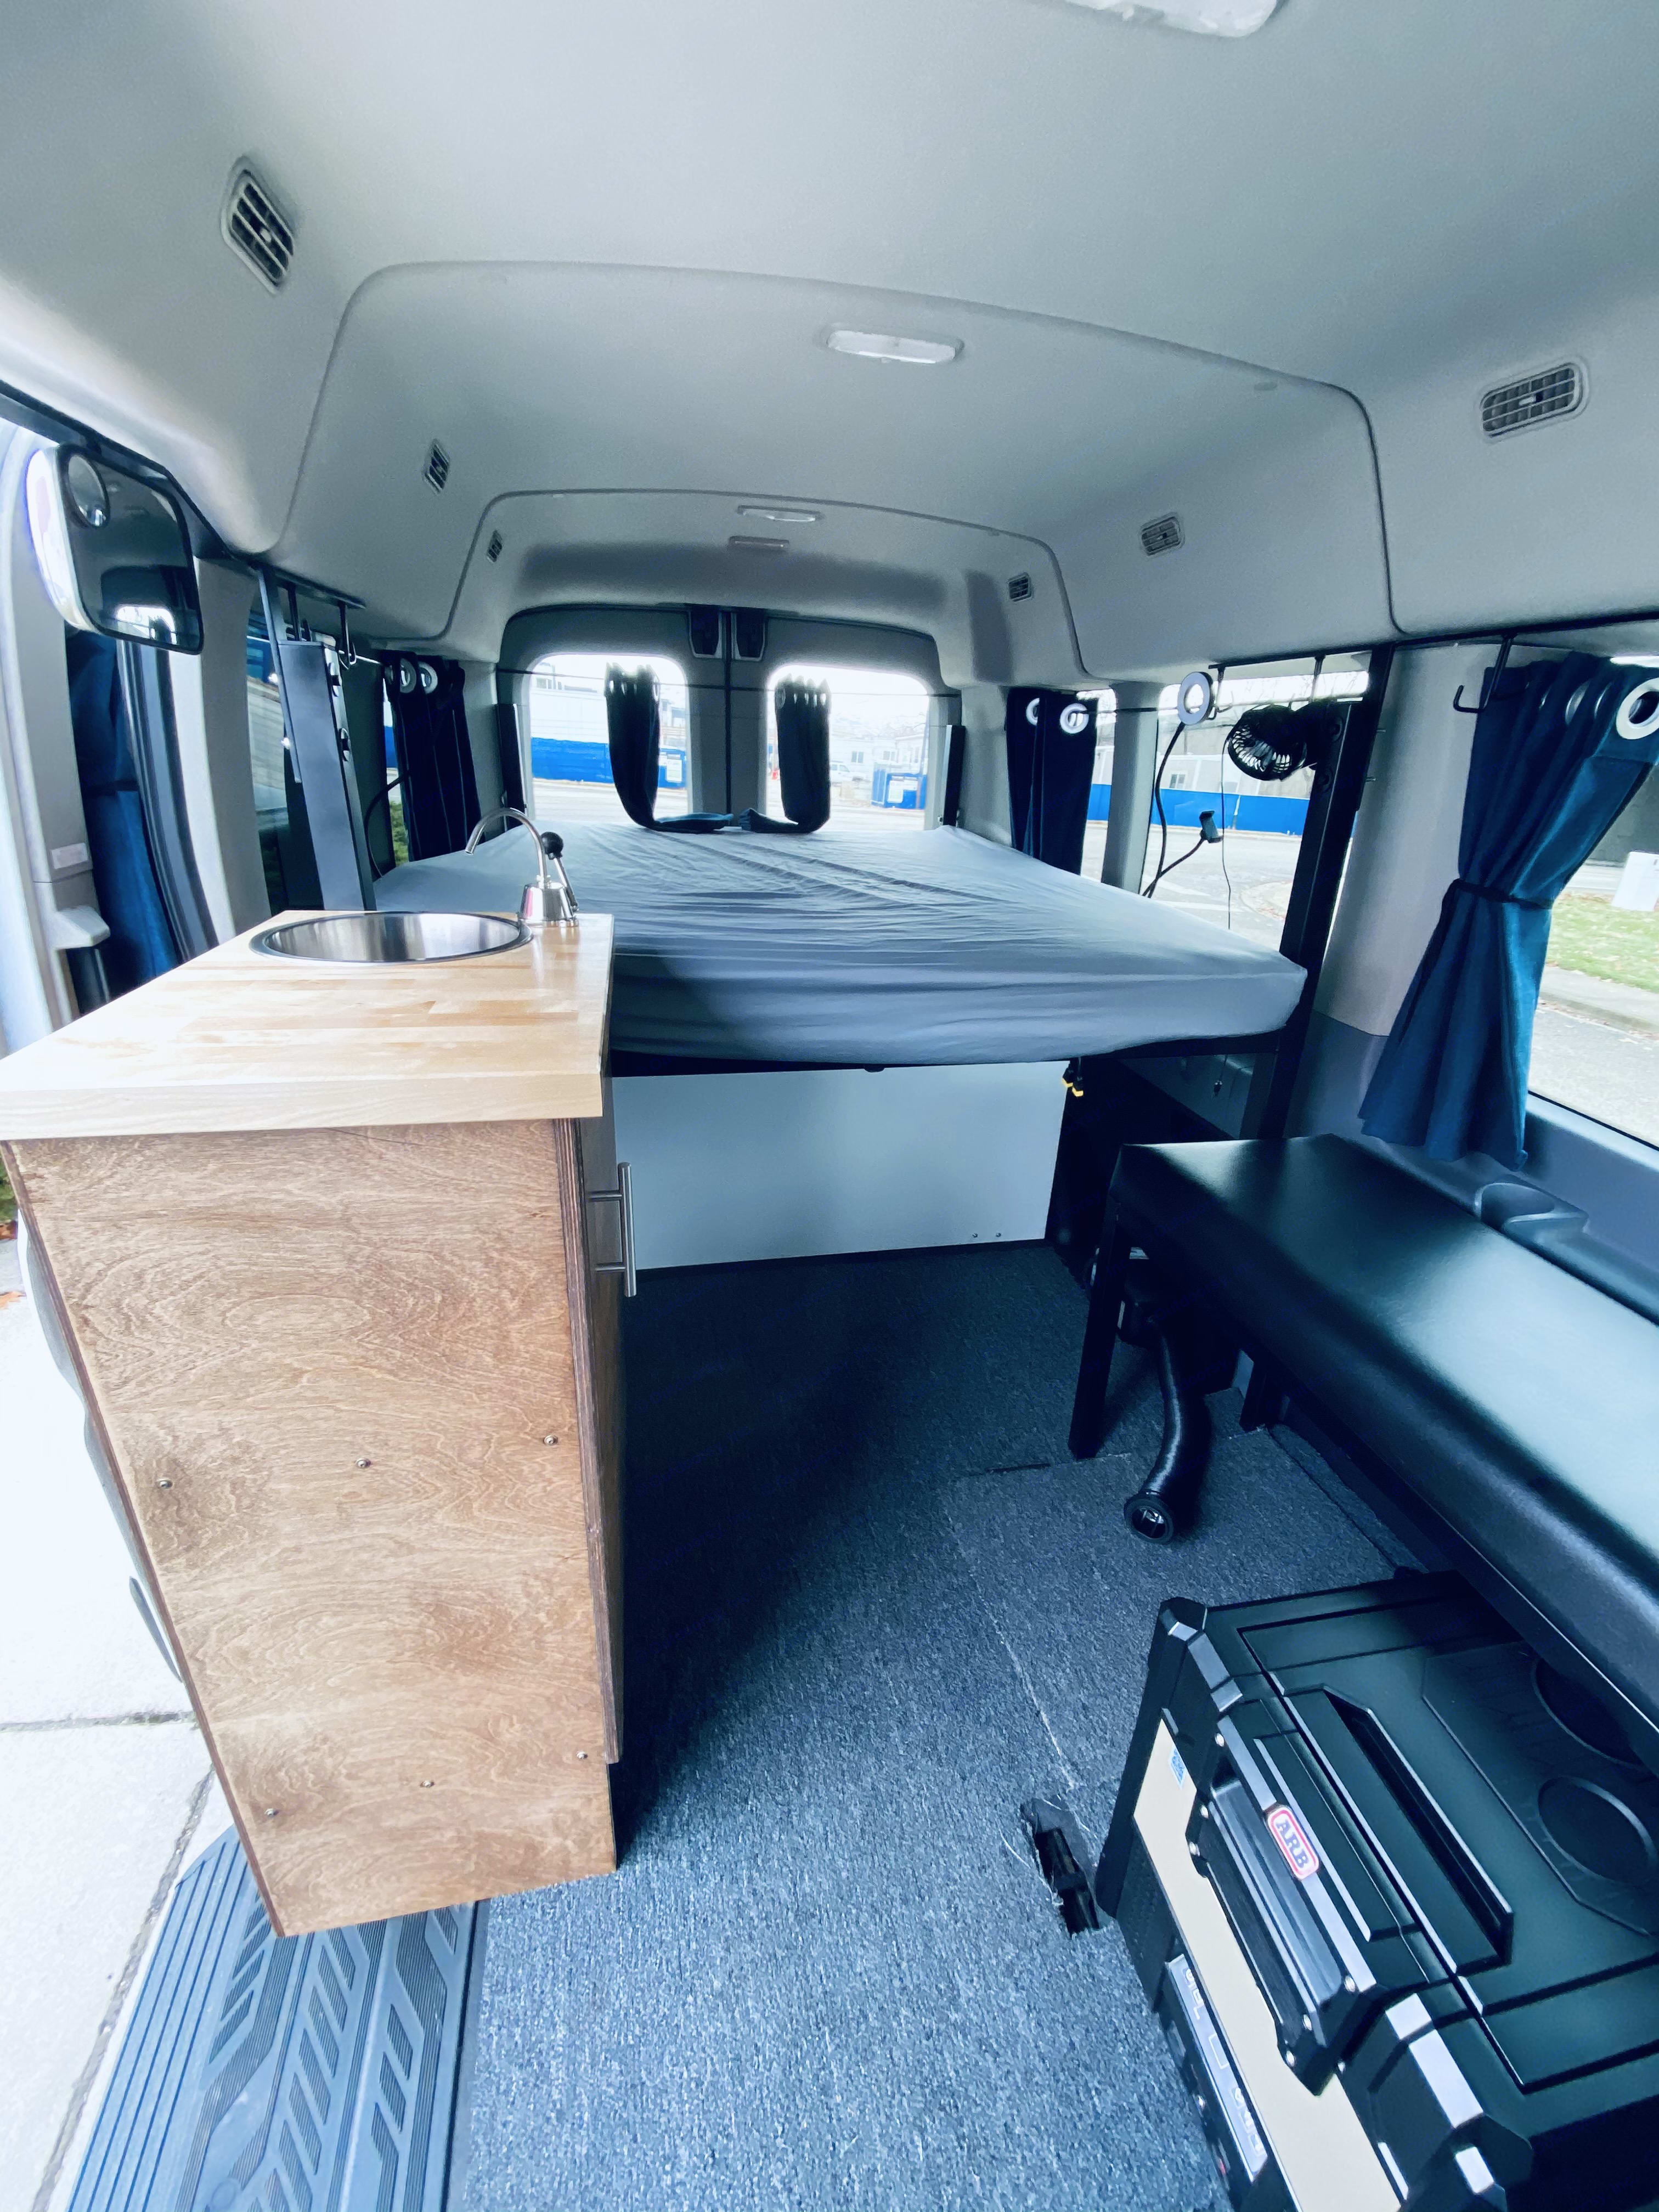 View from center of van looking backwards. Ford Transit 2019